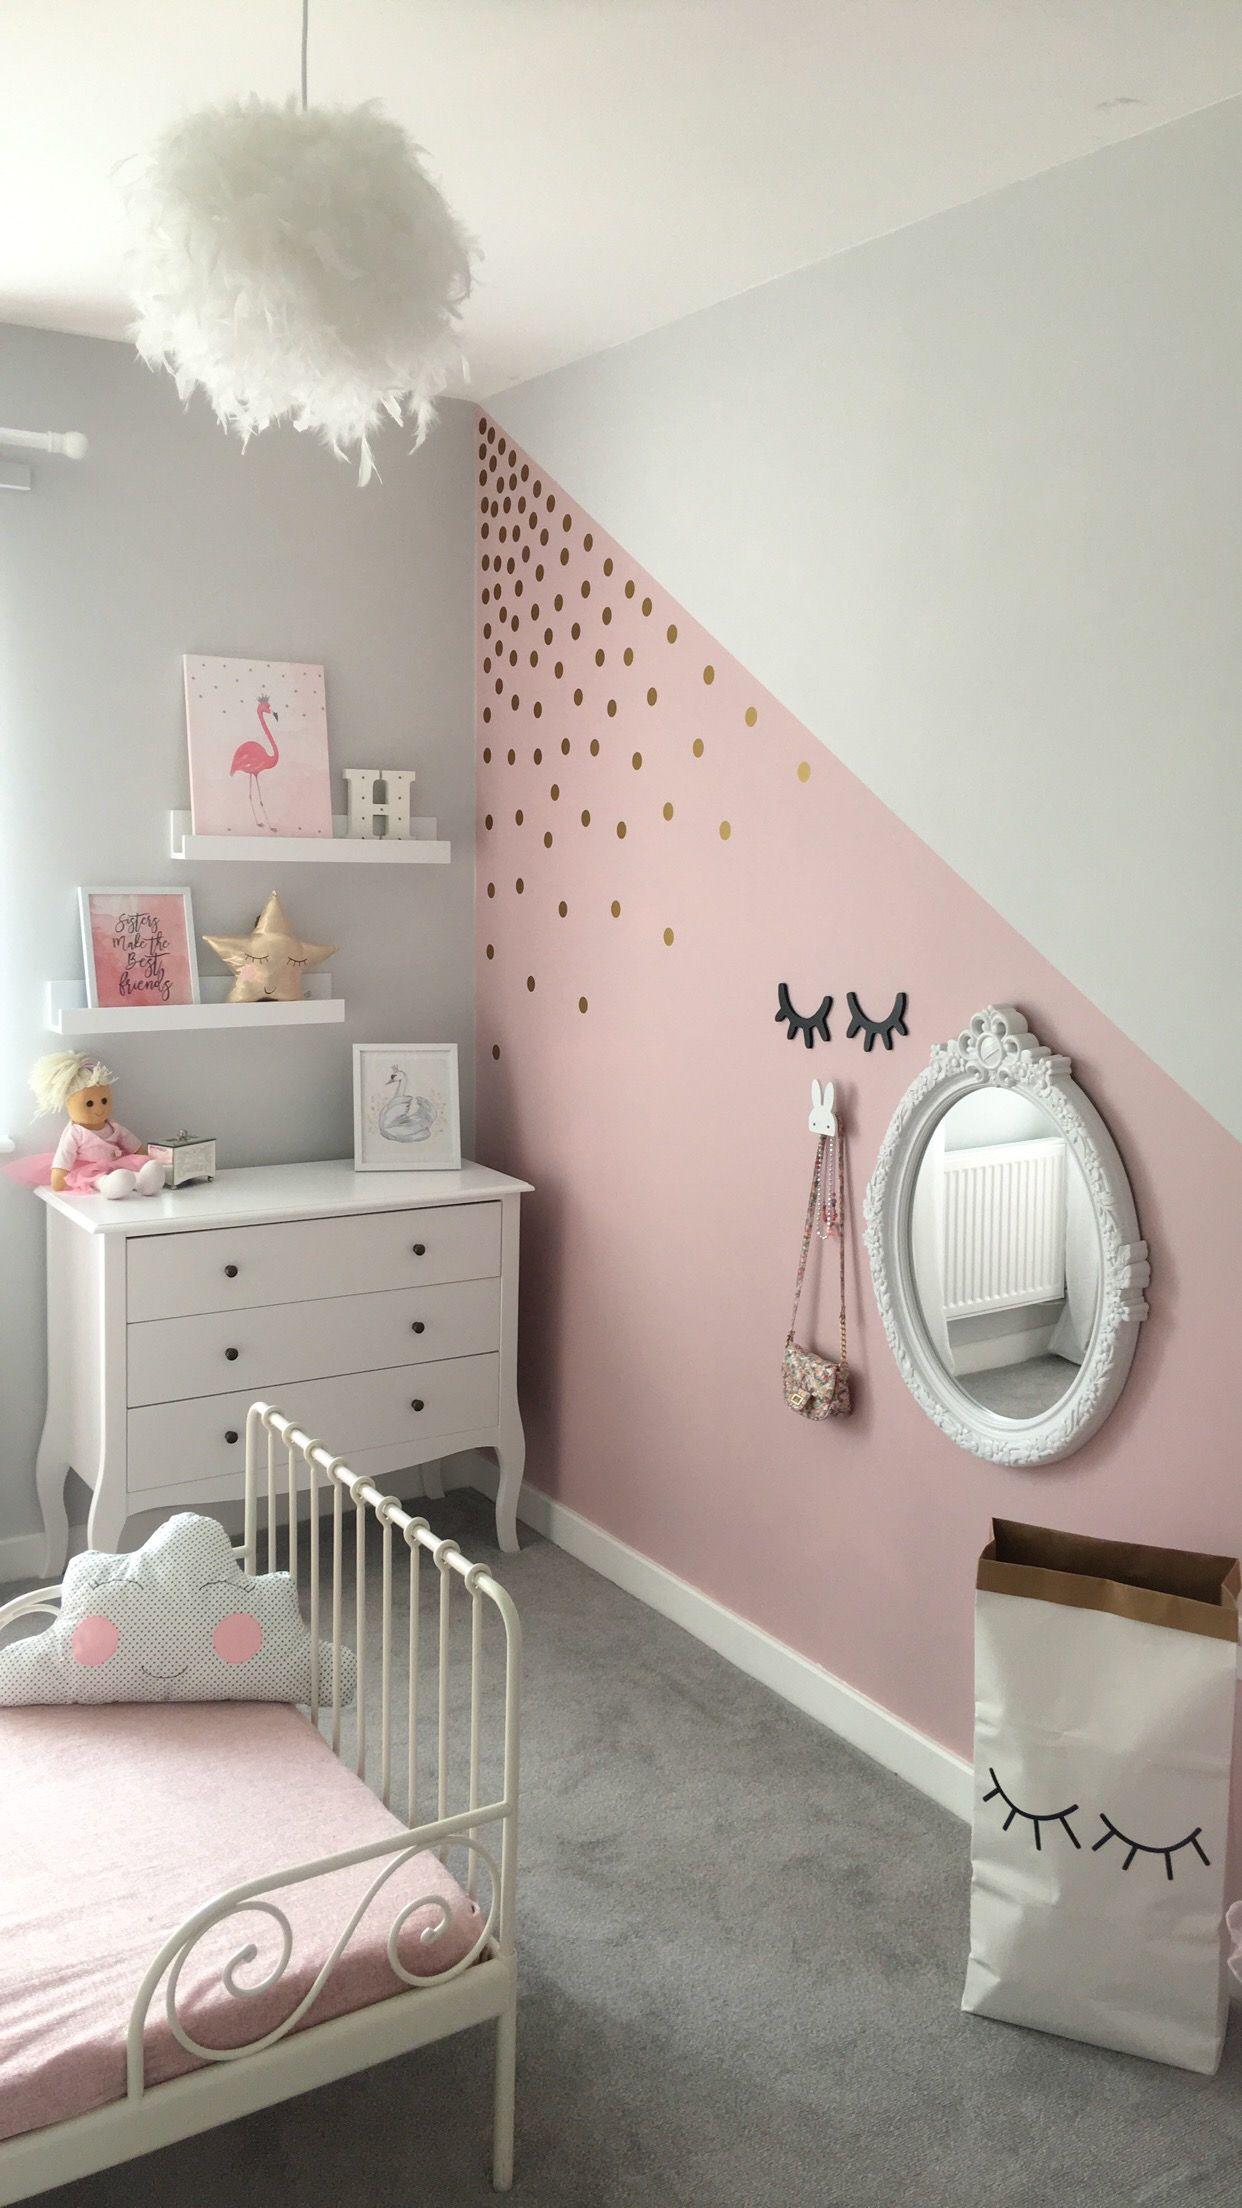 Girls Bedroom Ideas Polka Dot Decoracao Sala Decoracao De Quarto Quarto De Mulher